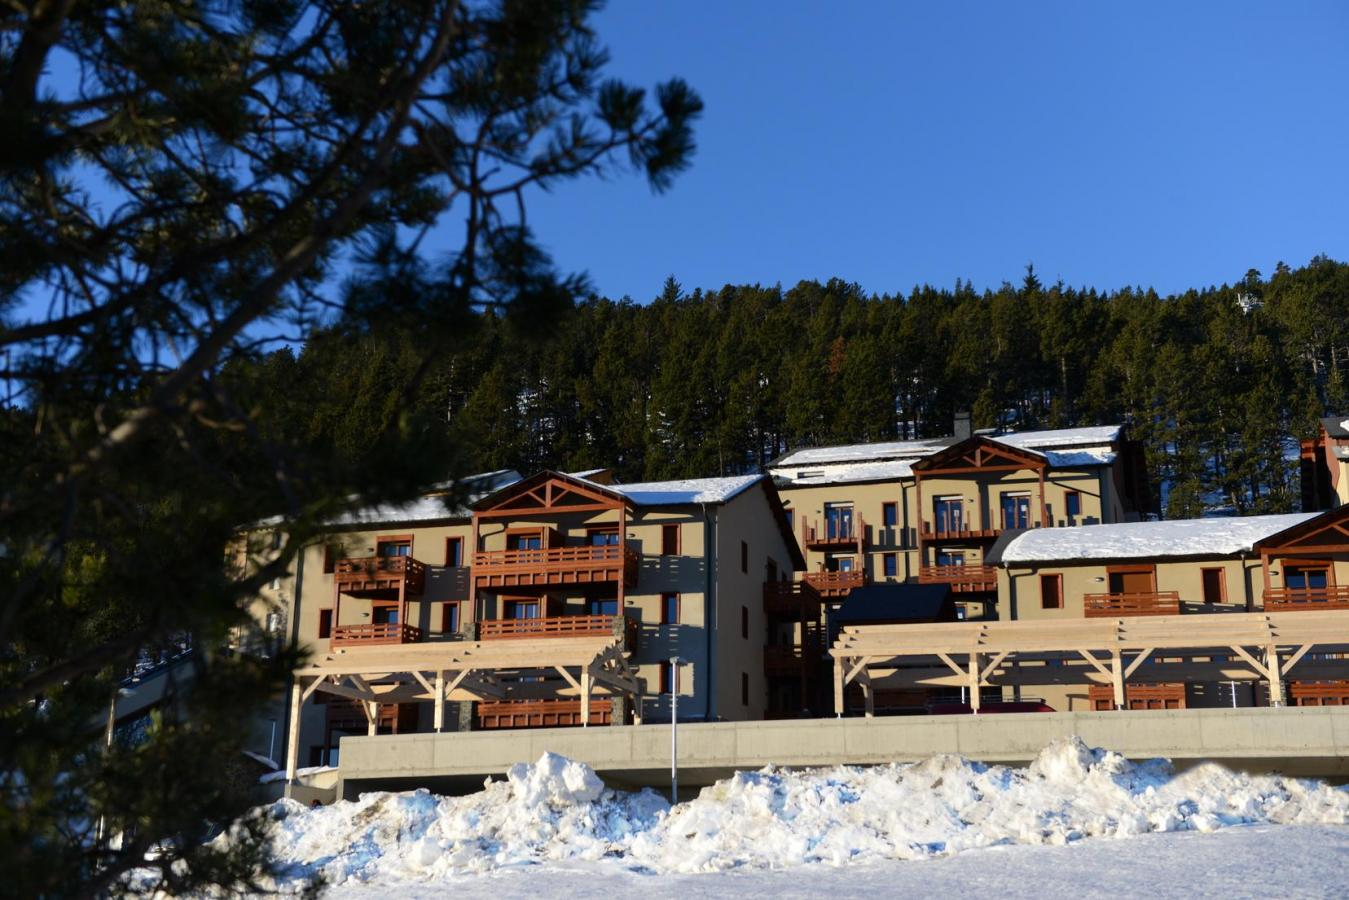 Location Residence Les Chalets De L'isard